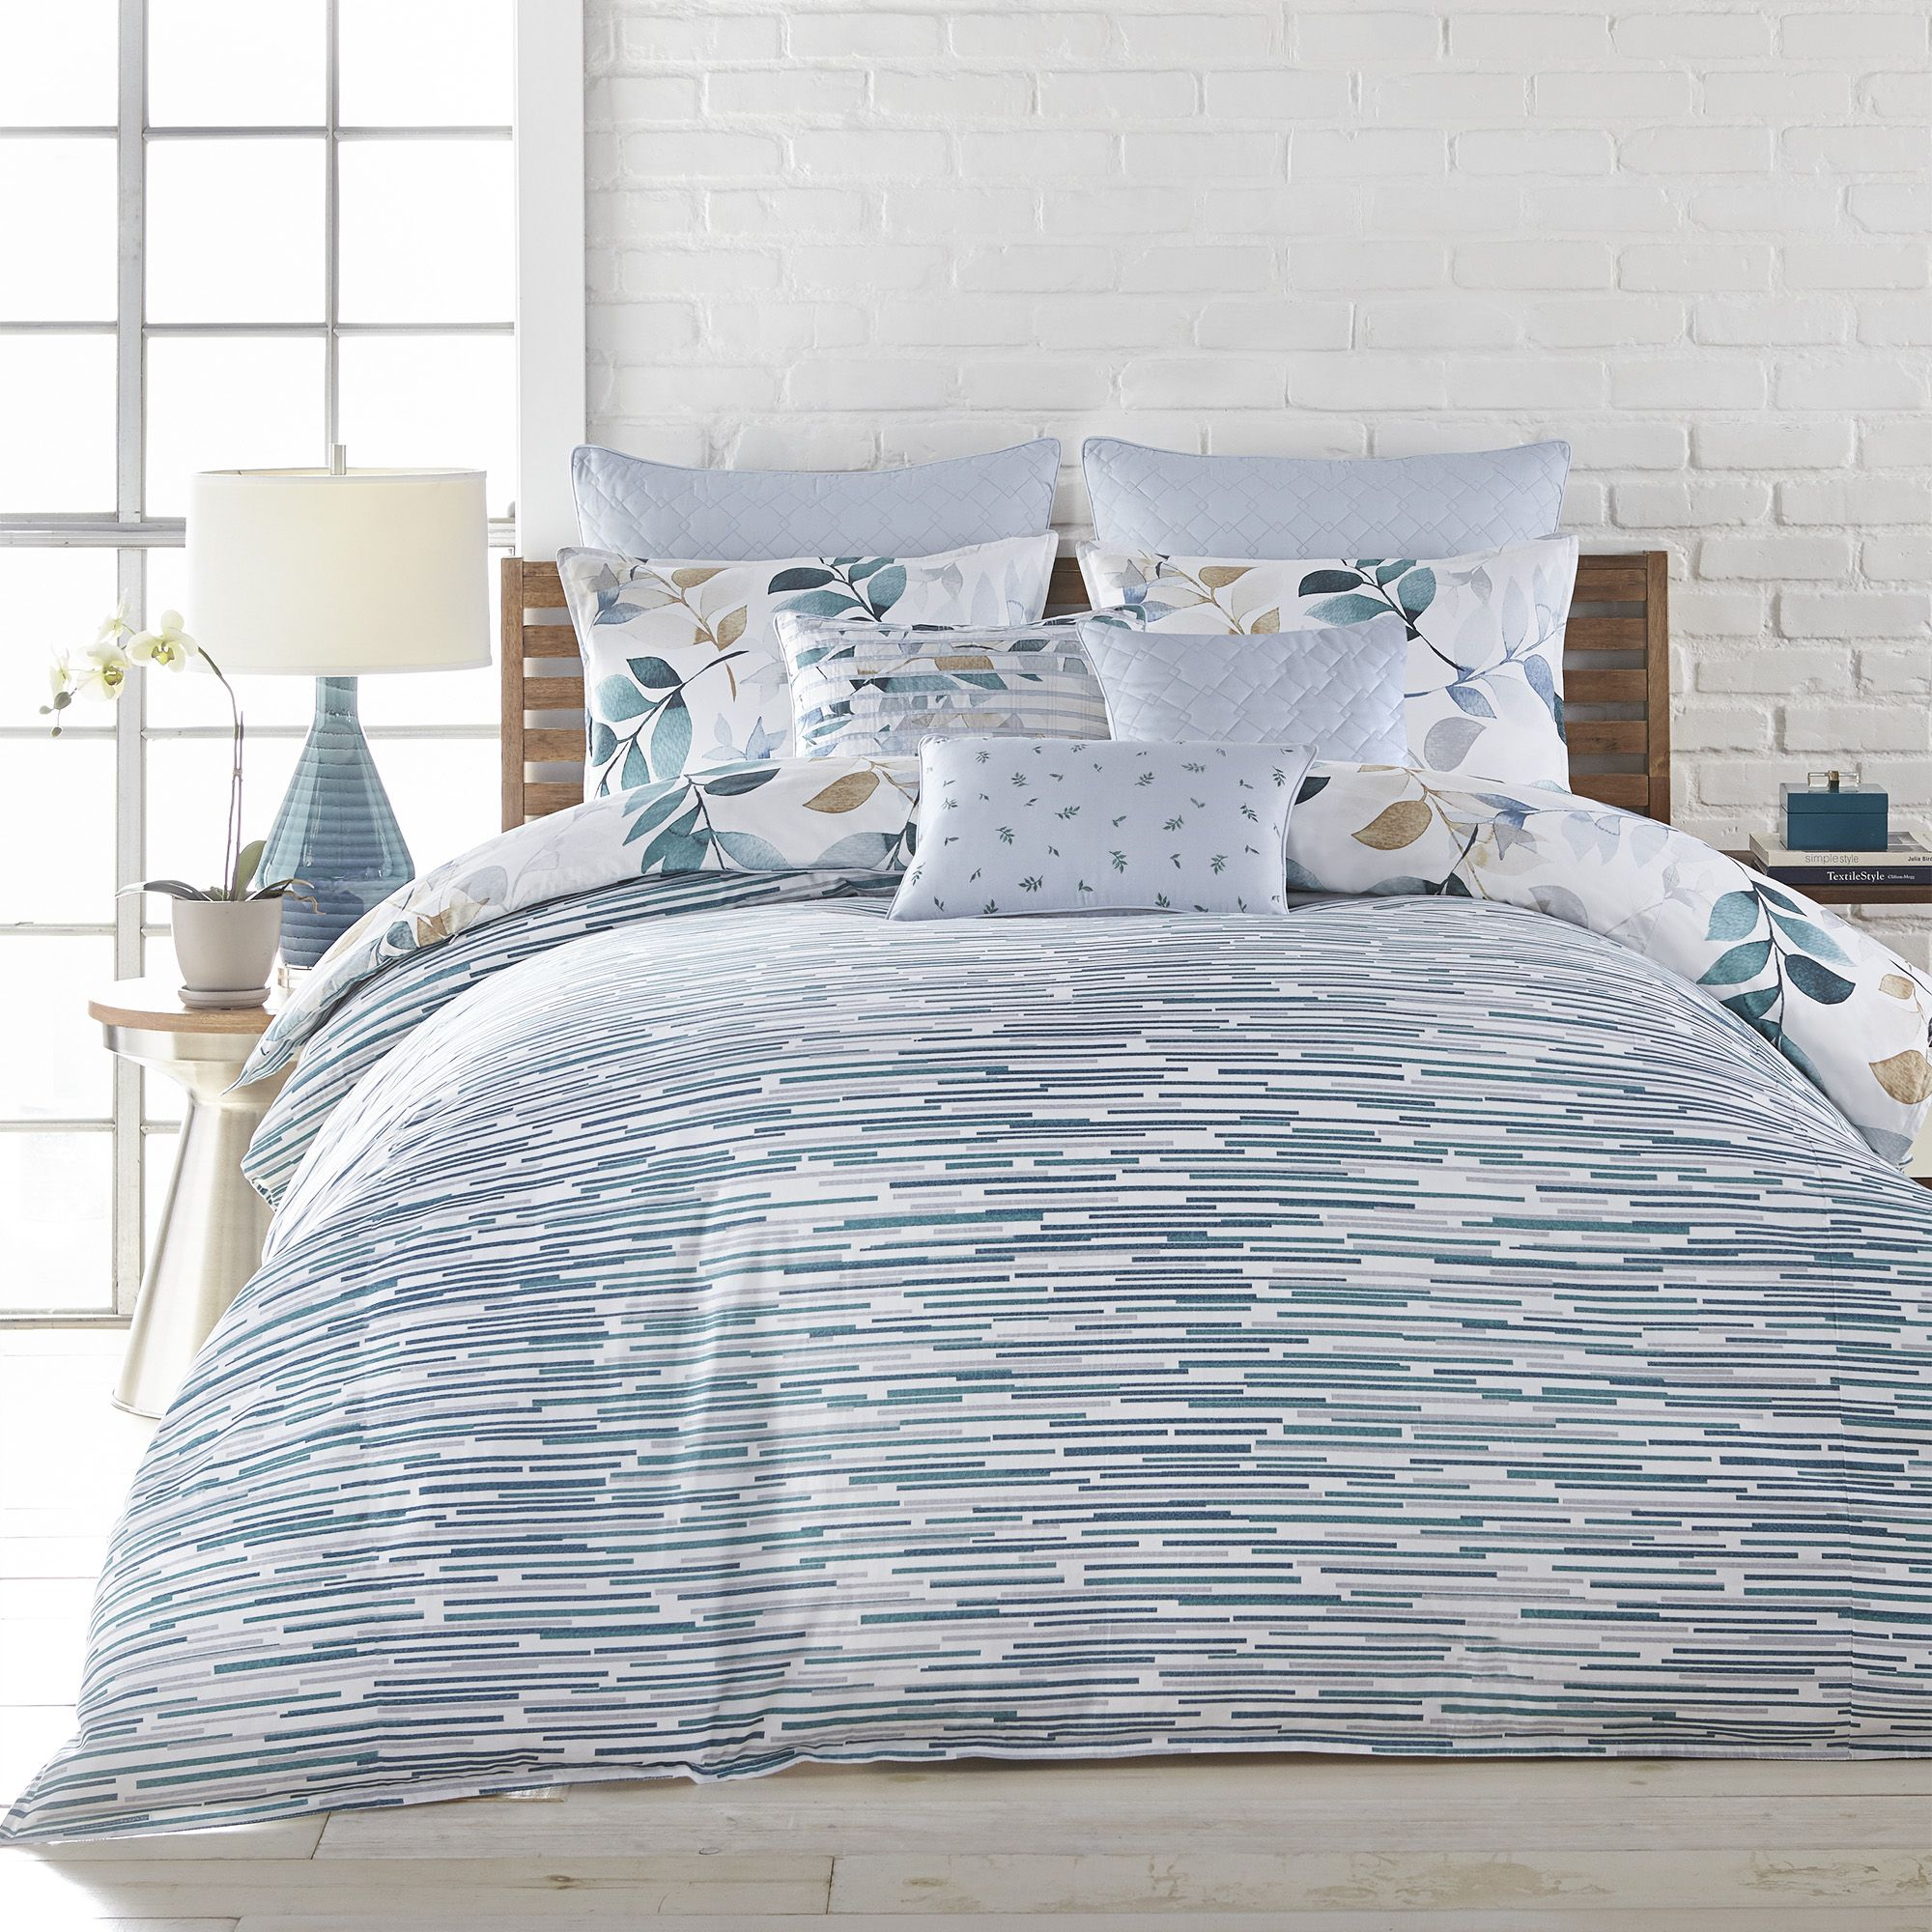 Lumia Bedding Collection In 2020 Blue Comforter Sets Light Blue Comforter Set Light Blue Comforter